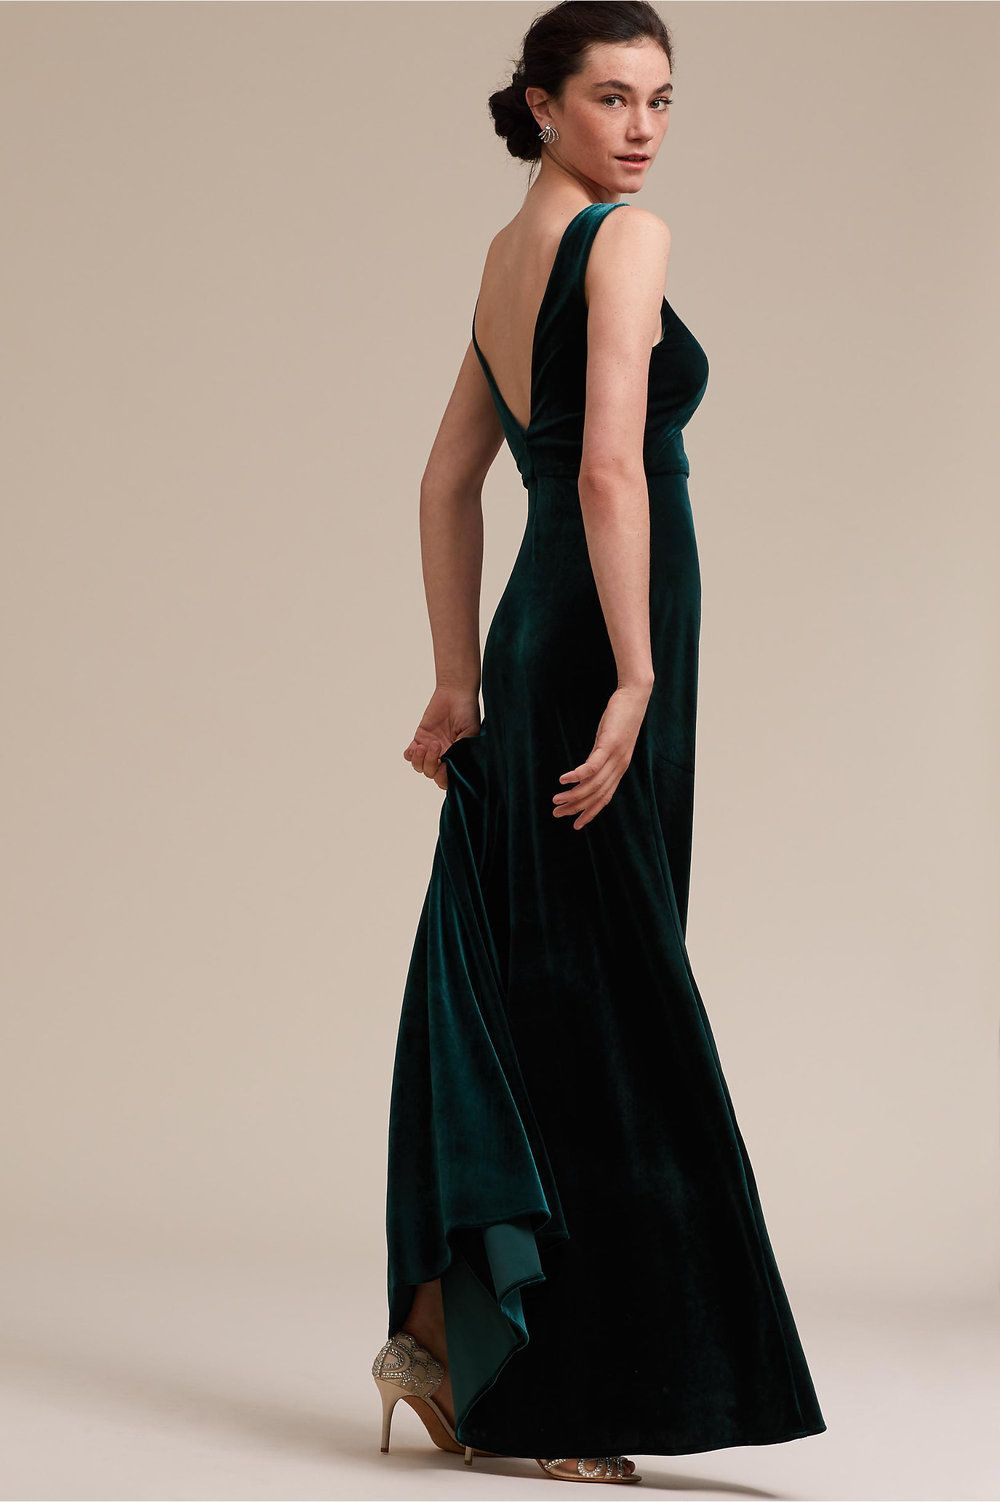 Dresses to wear to fall wedding as a guest   Dark and Moody Fall Wedding Dresses from BHLDN Under   The